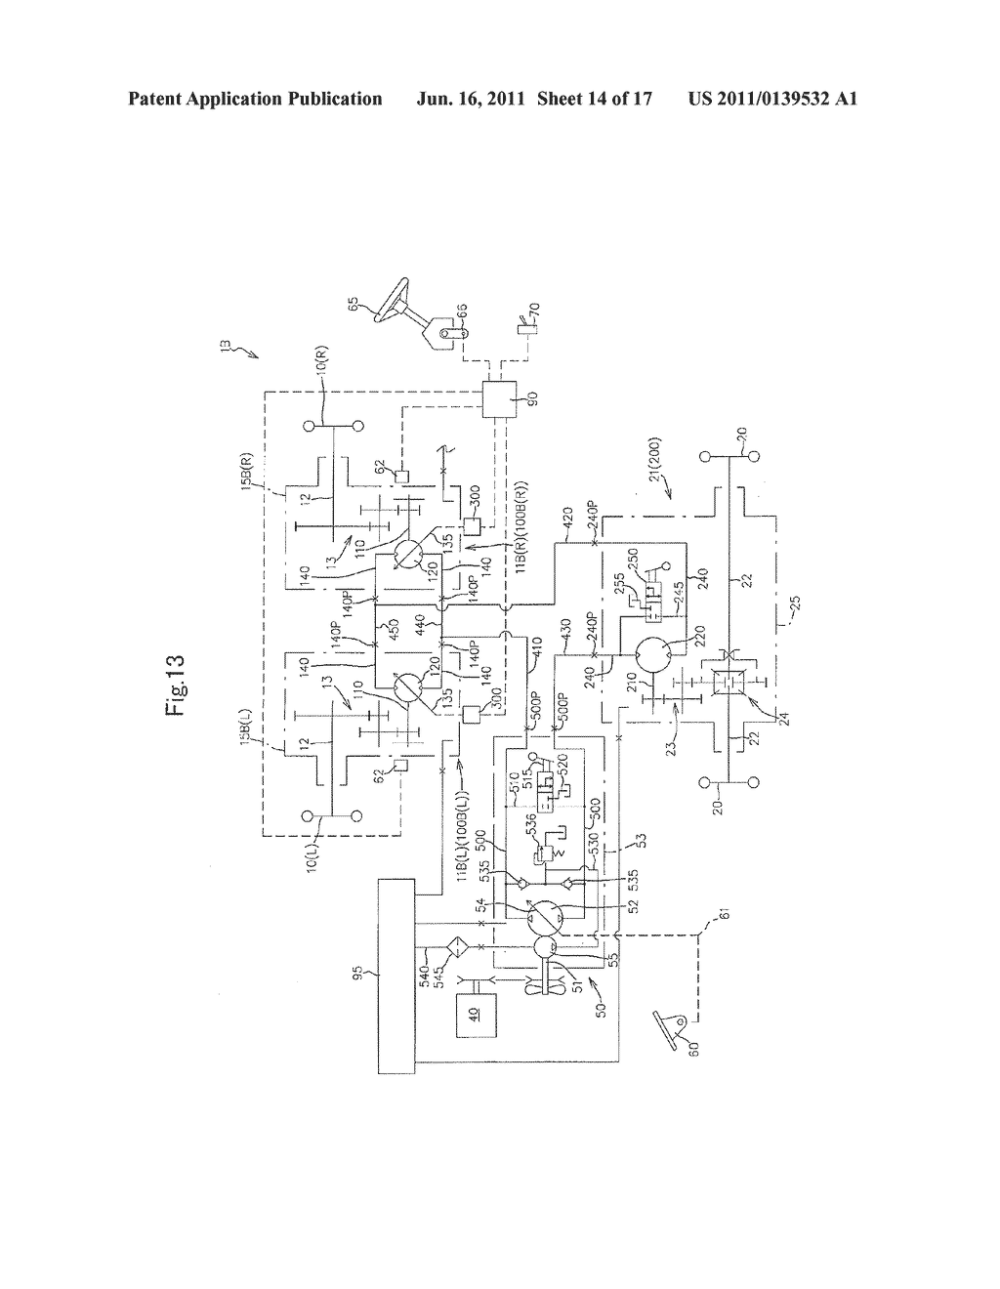 medium resolution of hydraulic motor unit and hydraulic four wheel drive working vehicle diagram schematic and image 15